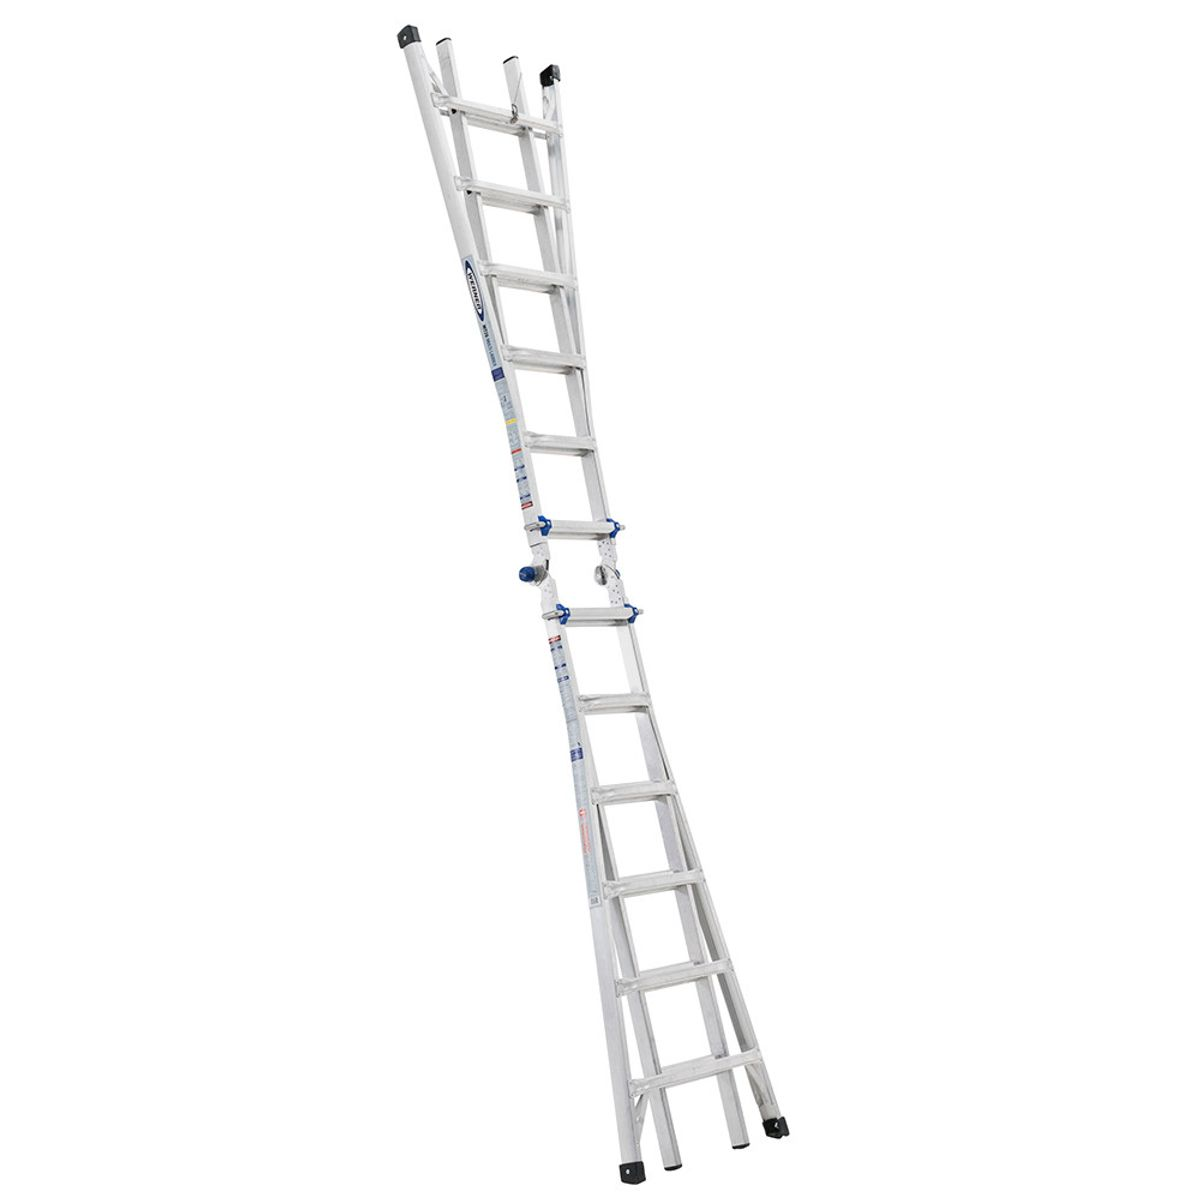 Mt 26 Multi Purpose Ladders Werner Us